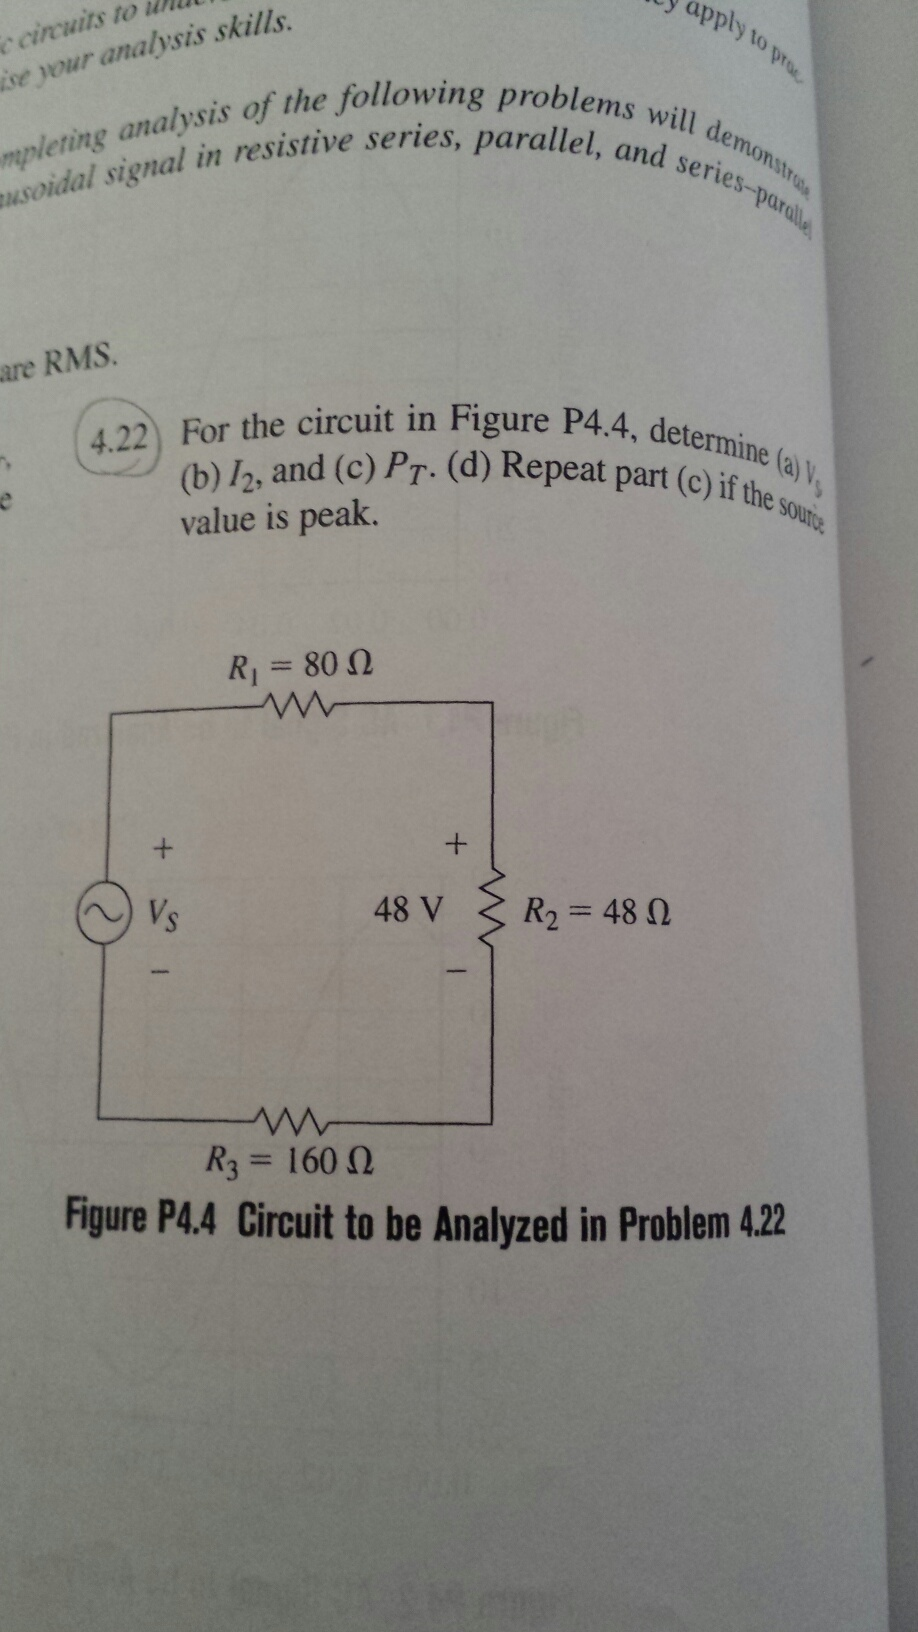 For the circuit in Figure P4.4 determine (a) VS (b